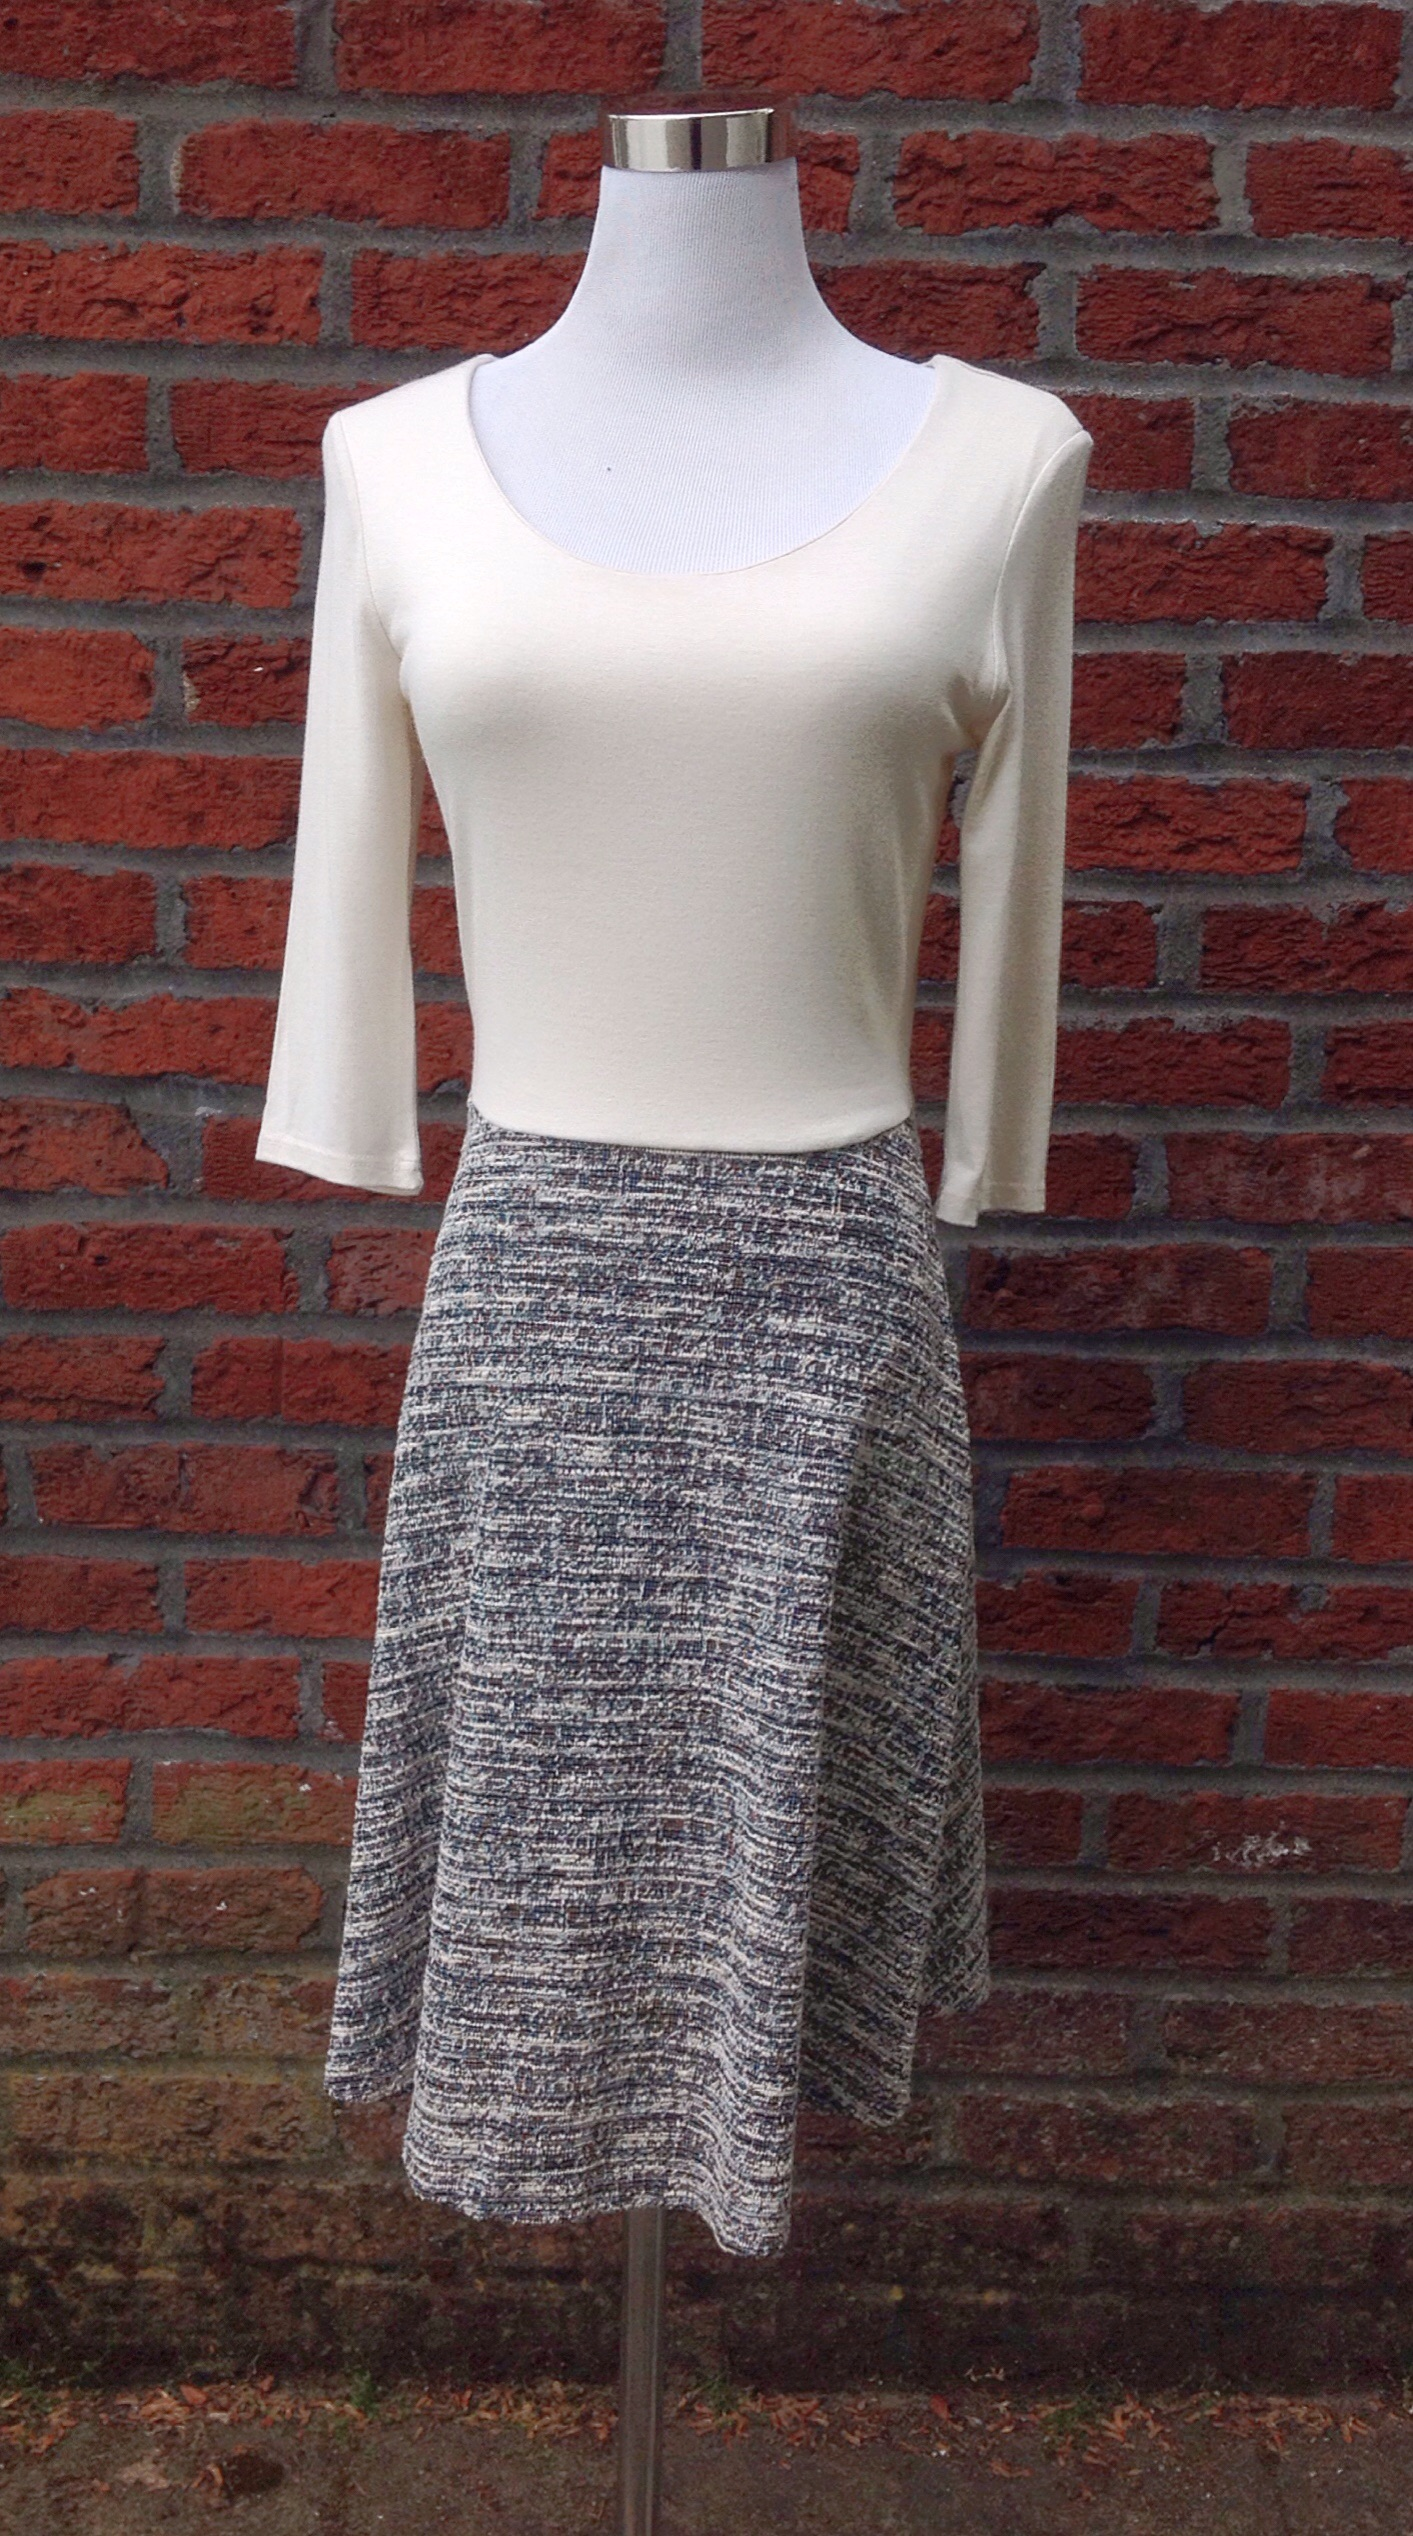 Scoop neck knit dress with contrasting textured skirt in ivory/grey